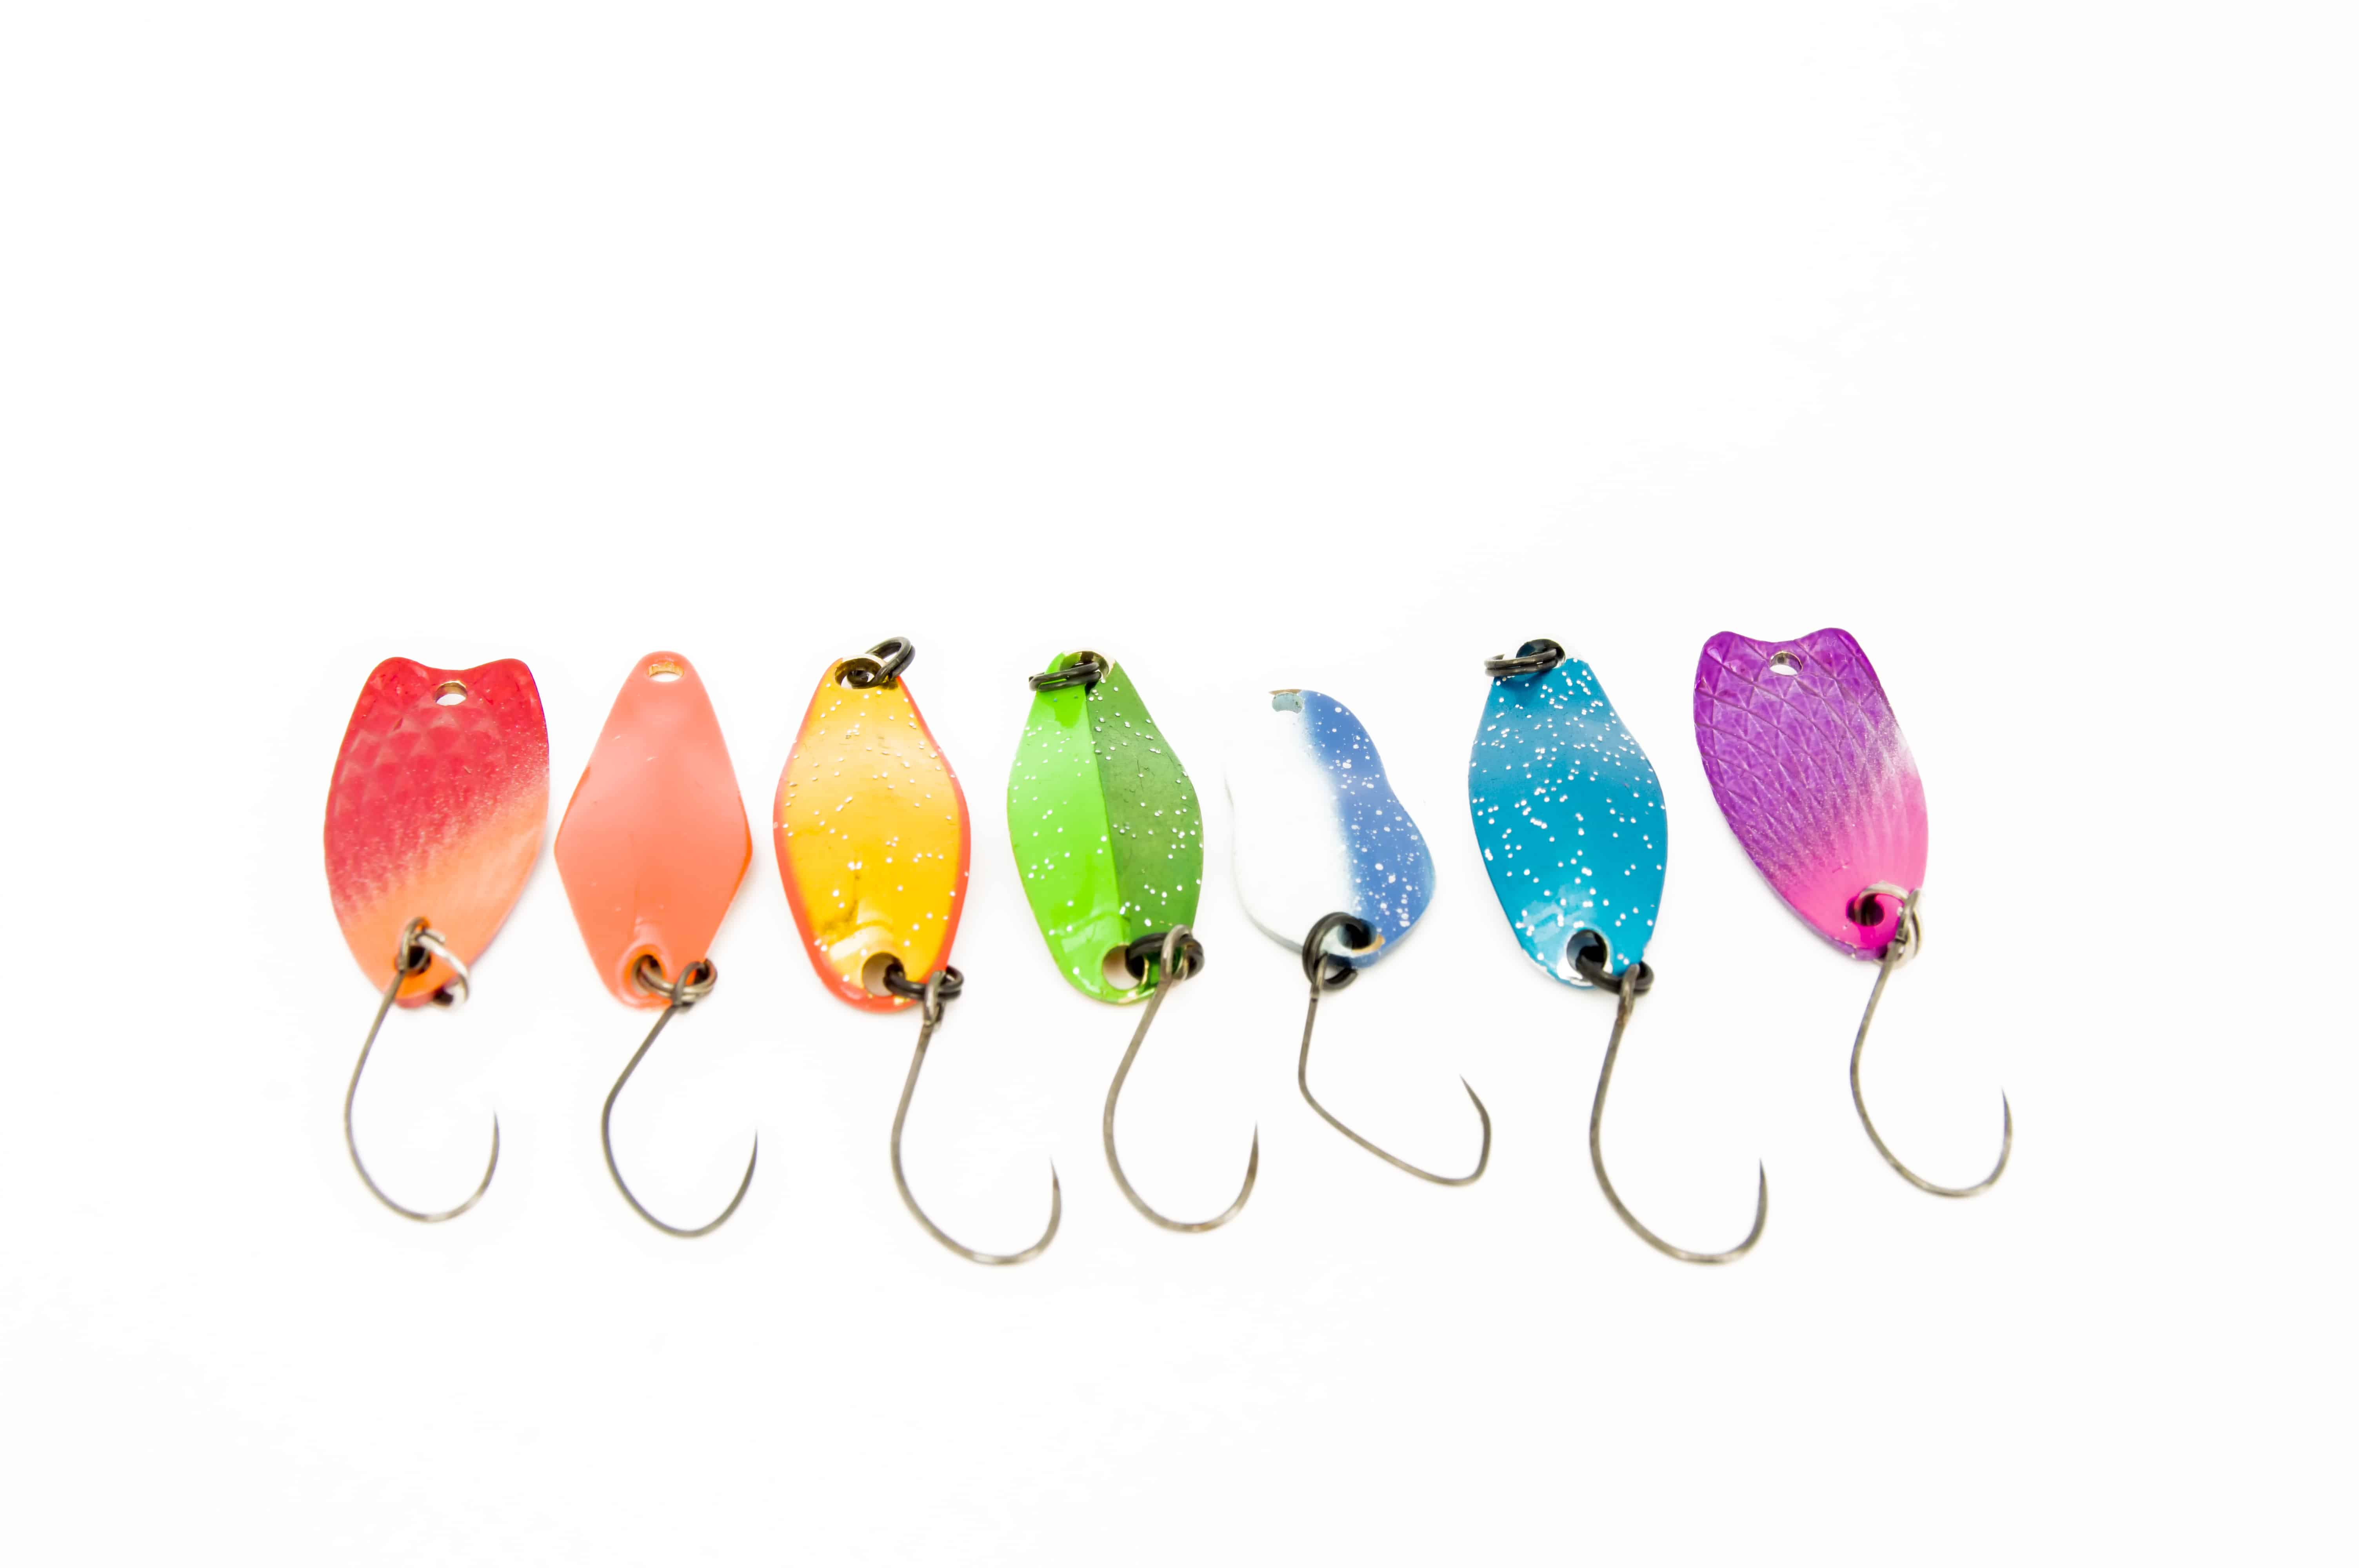 Rainbow with ultralite spoons for trout fishing (area fishing) and other fish. Colored hard lures are arranged in a row on a uniform white background top view